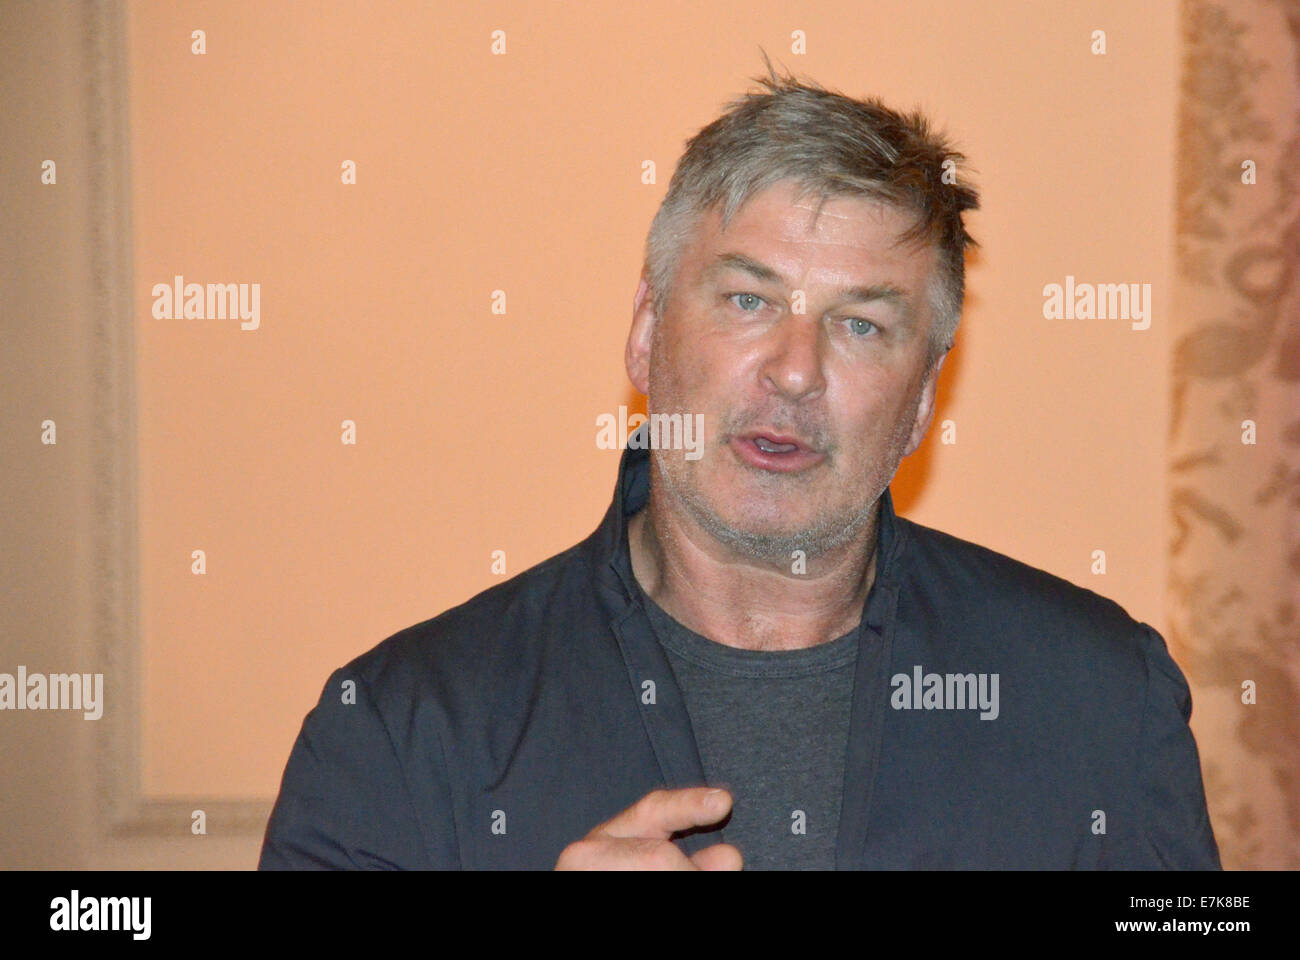 New York, USA. 19th Sep, 2014. US actor Alec Baldwin speaks during an interview in New York, USA, 19 September 2014. Stock Photo